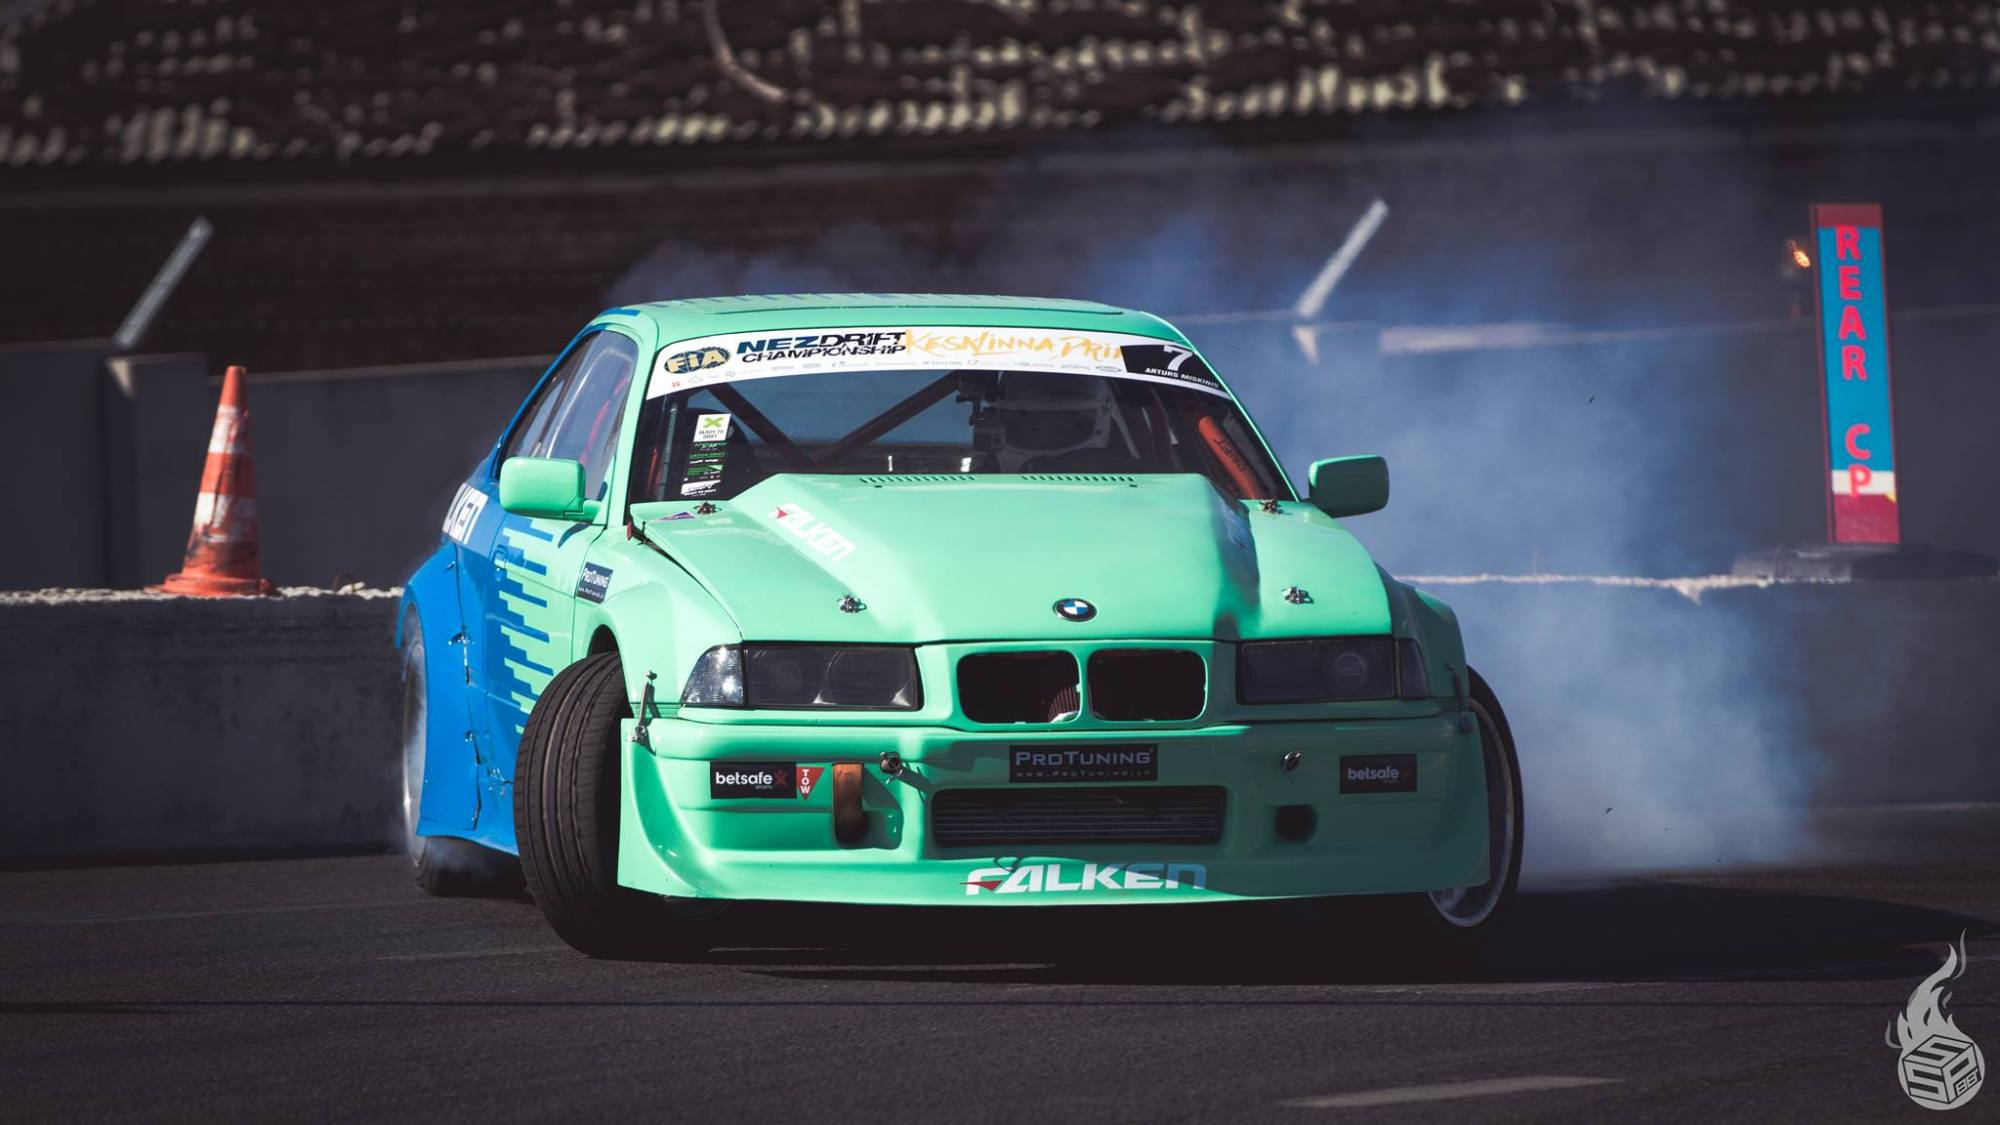 hight resolution of  event and 8th place in latvian drift cup semipro class he s hoping a strong finish this season will lead to an even brighter 2018 season 1992 bmw e36